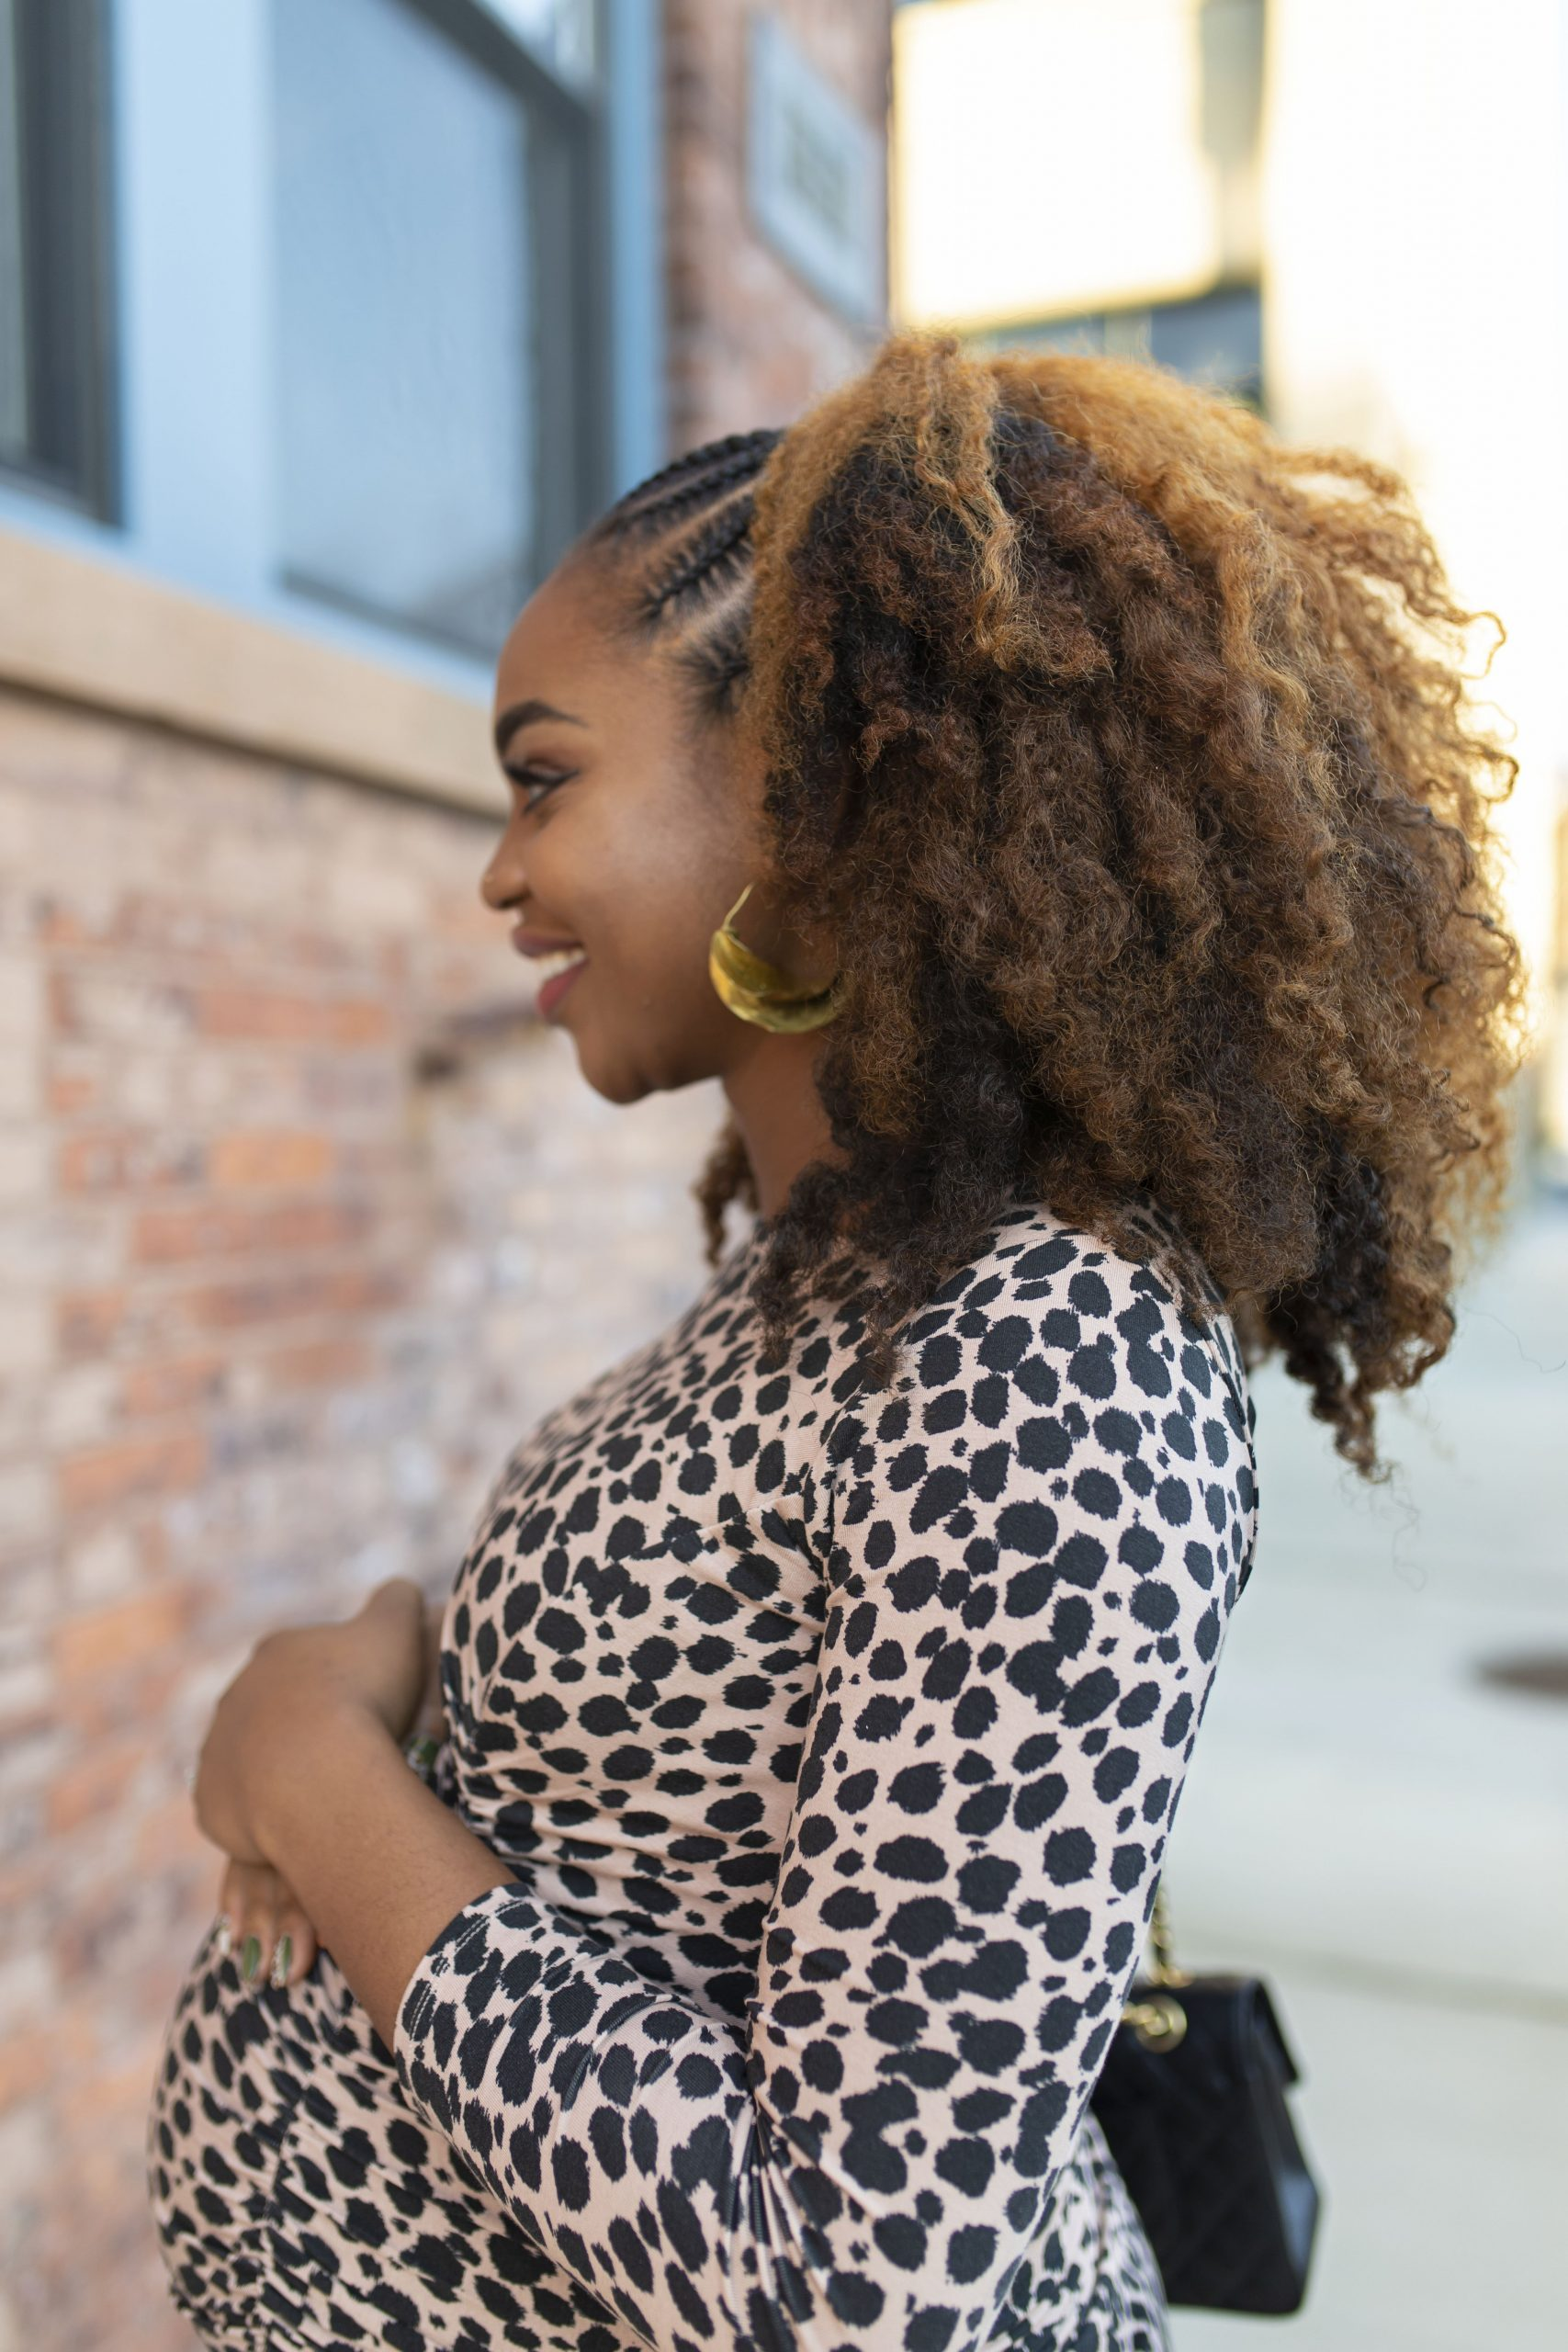 Ijeoma Kola pregnant in leopard print dress and stitch braids and curls natural hairstyle